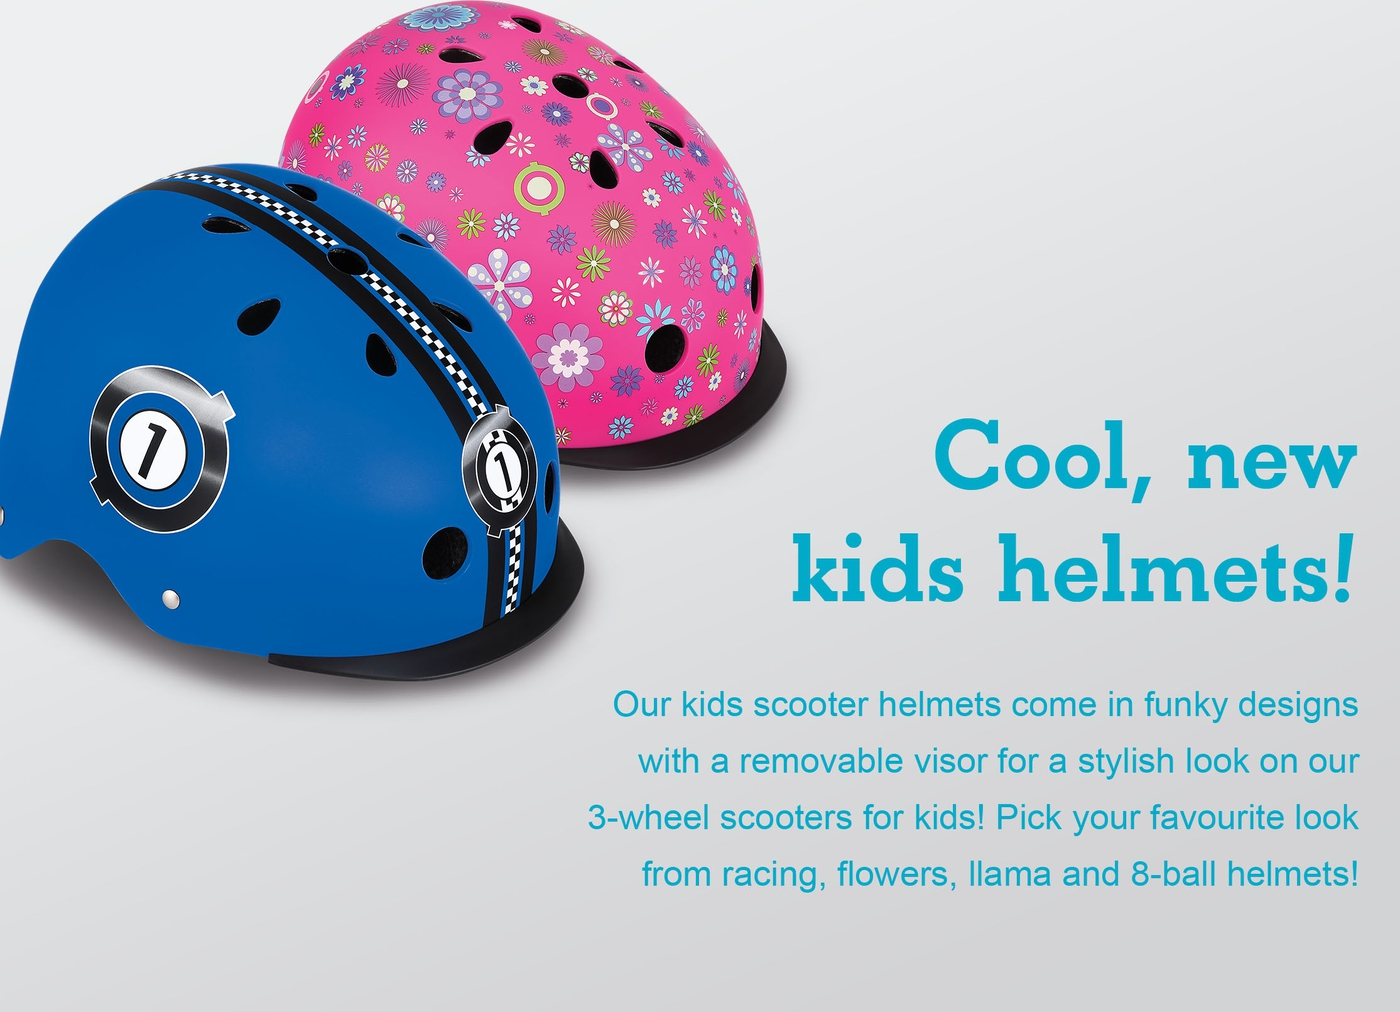 Cool, new kids helmets!